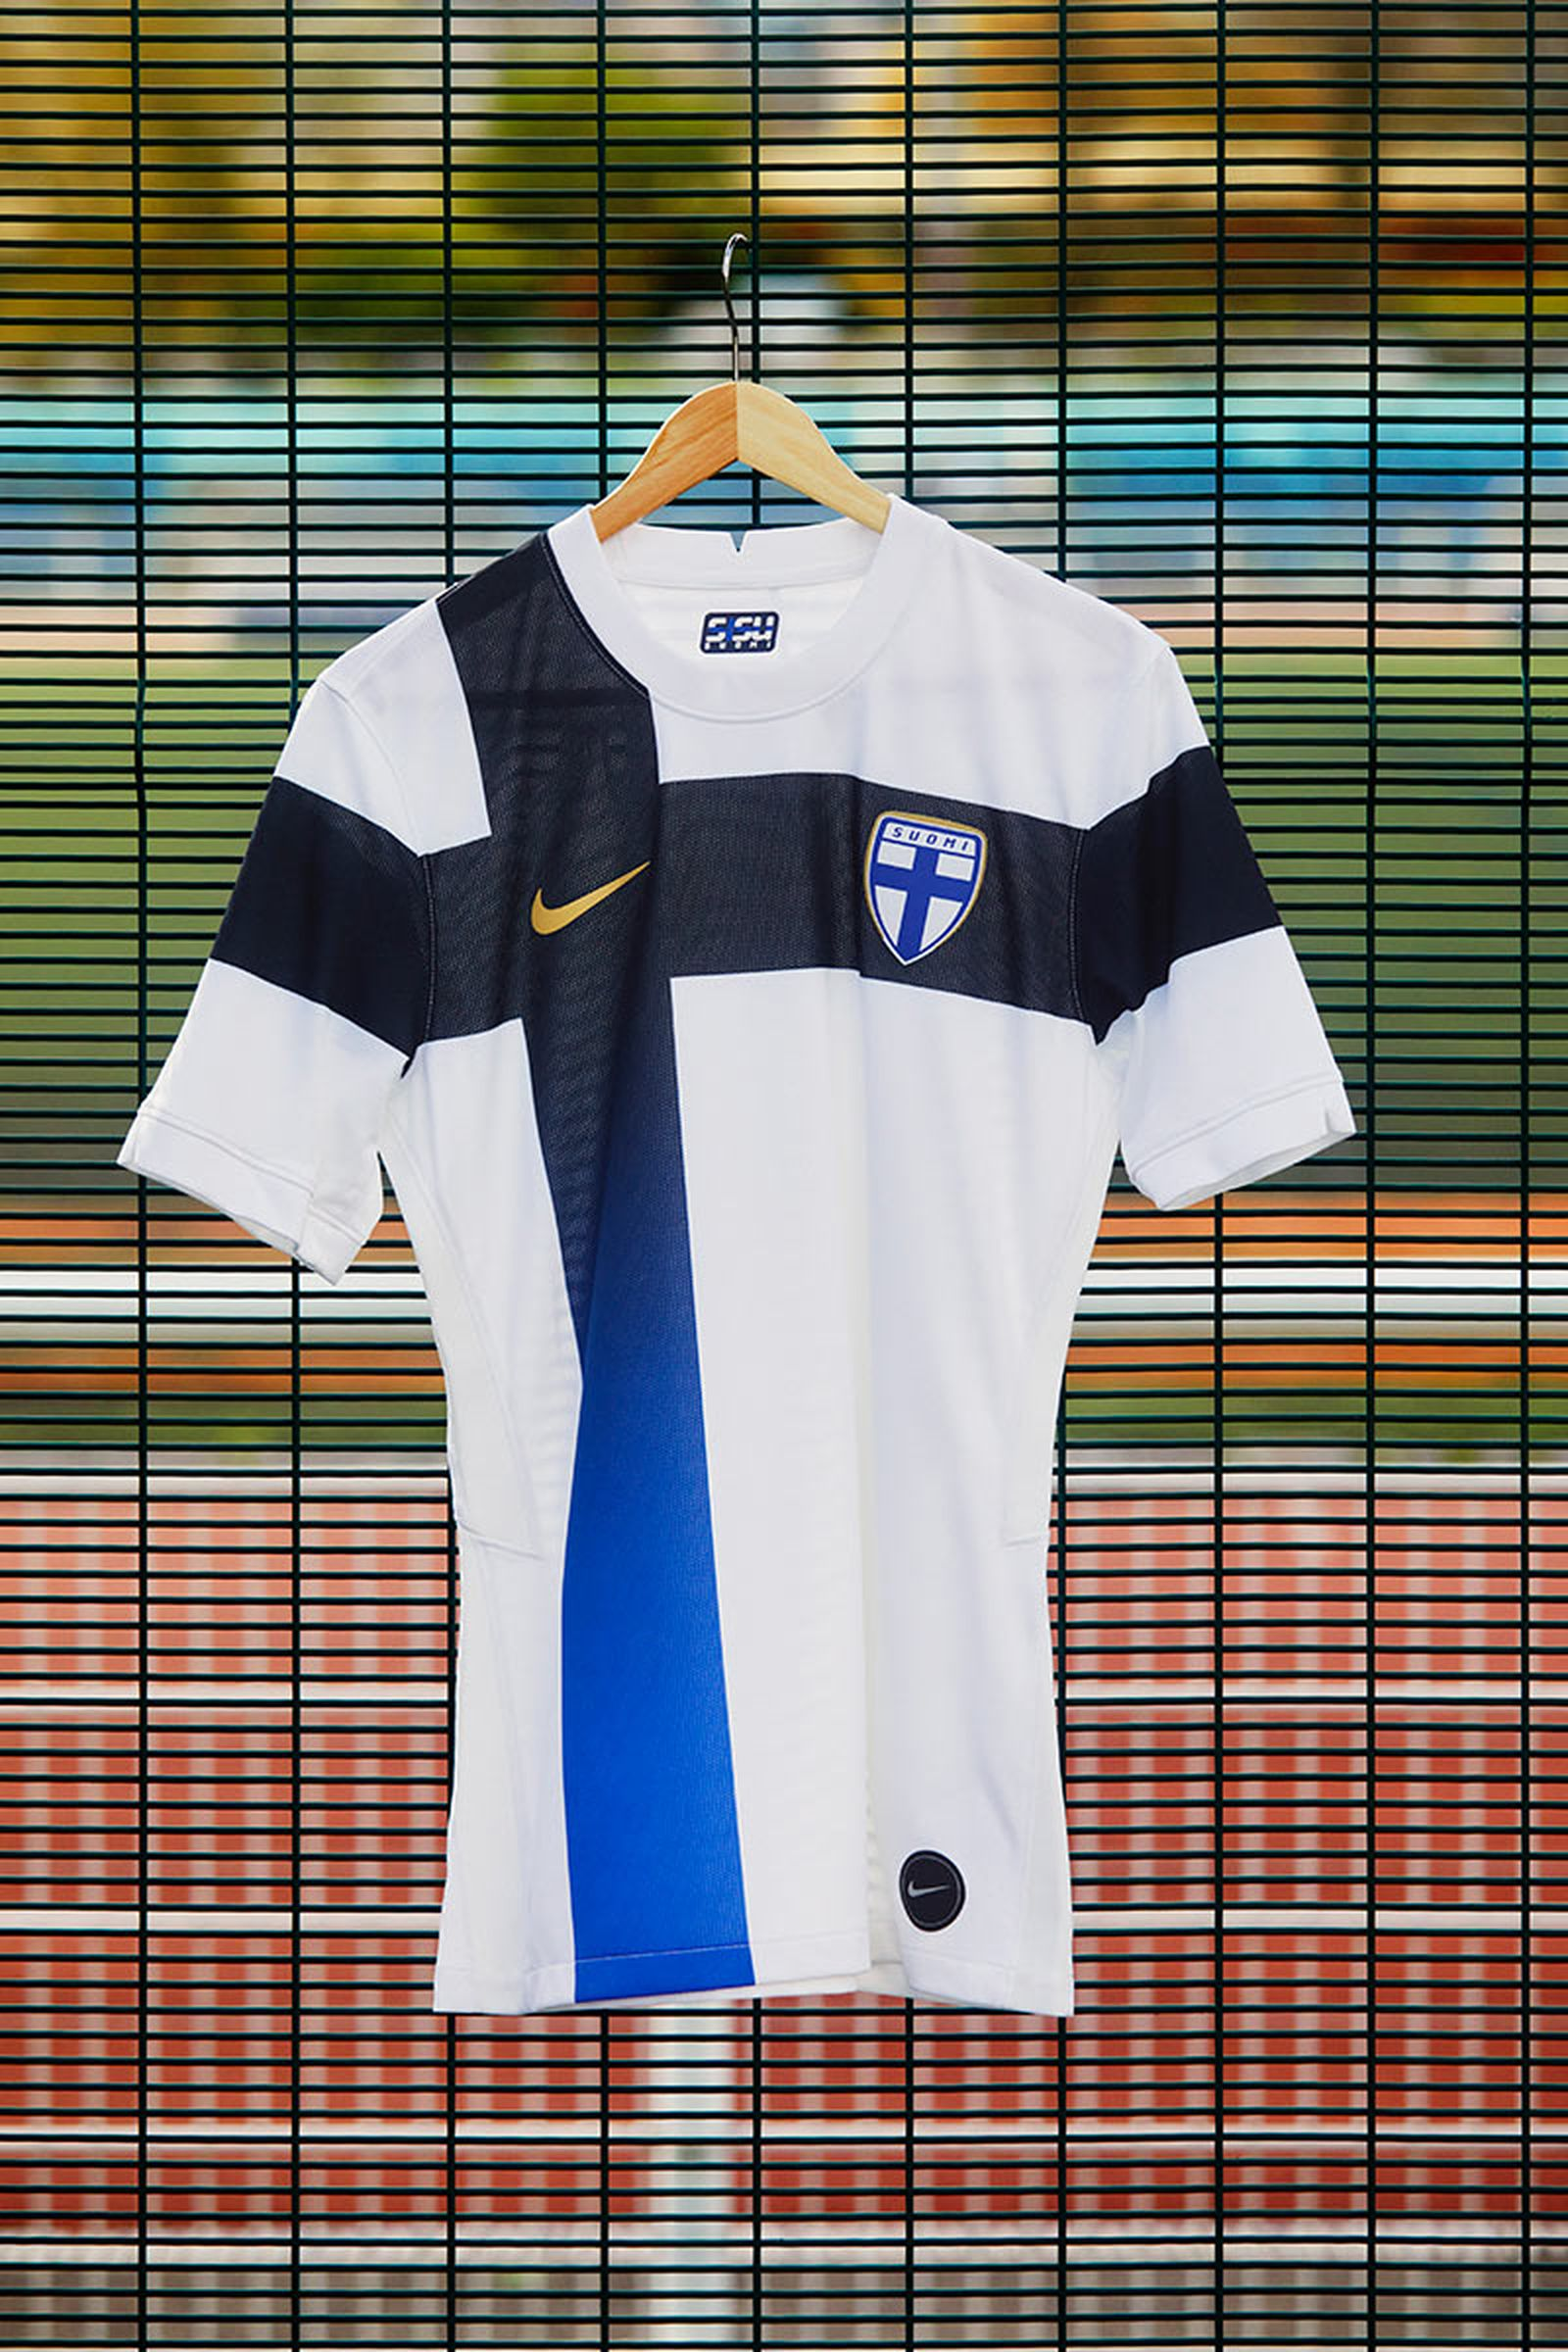 nike-national-team-kits-2020-ranking-12